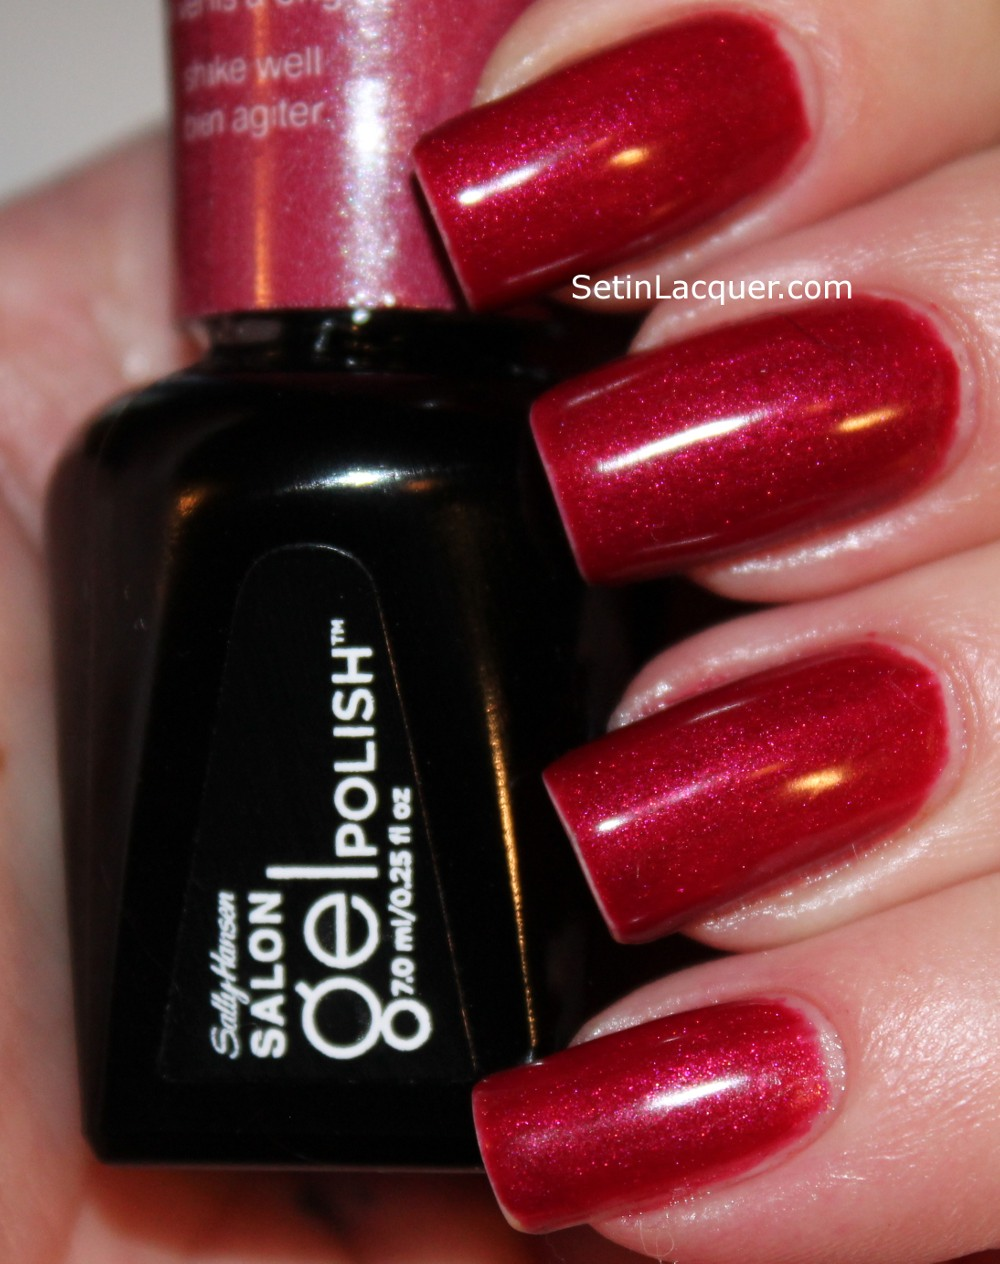 Set in Lacquer: gel polish